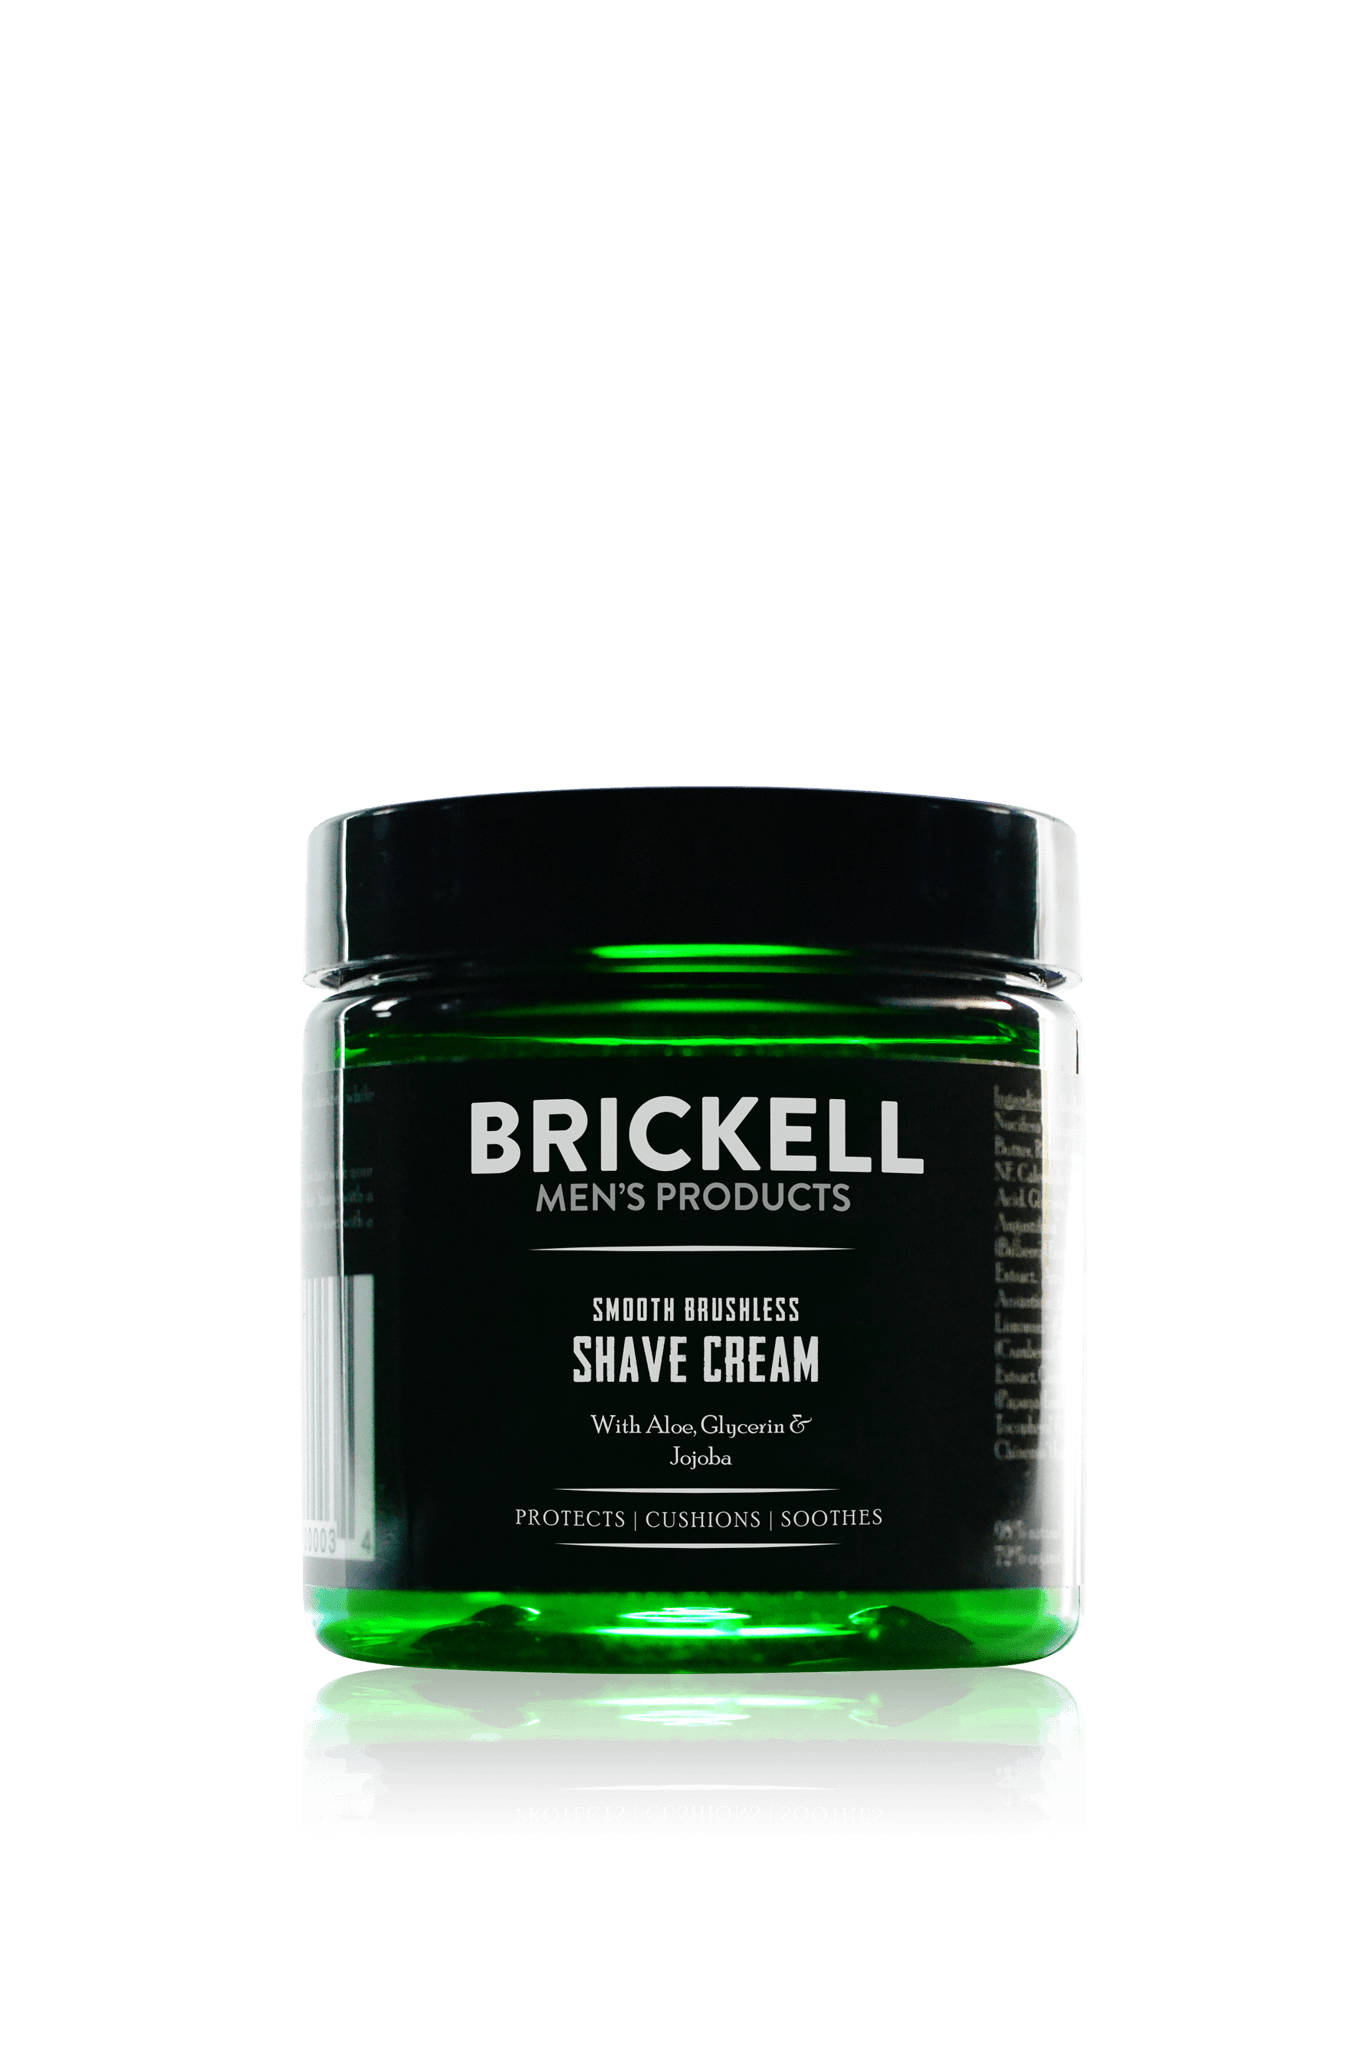 Exceptional The Best Shaving Cream For Men | Brickell Menu0027s Products